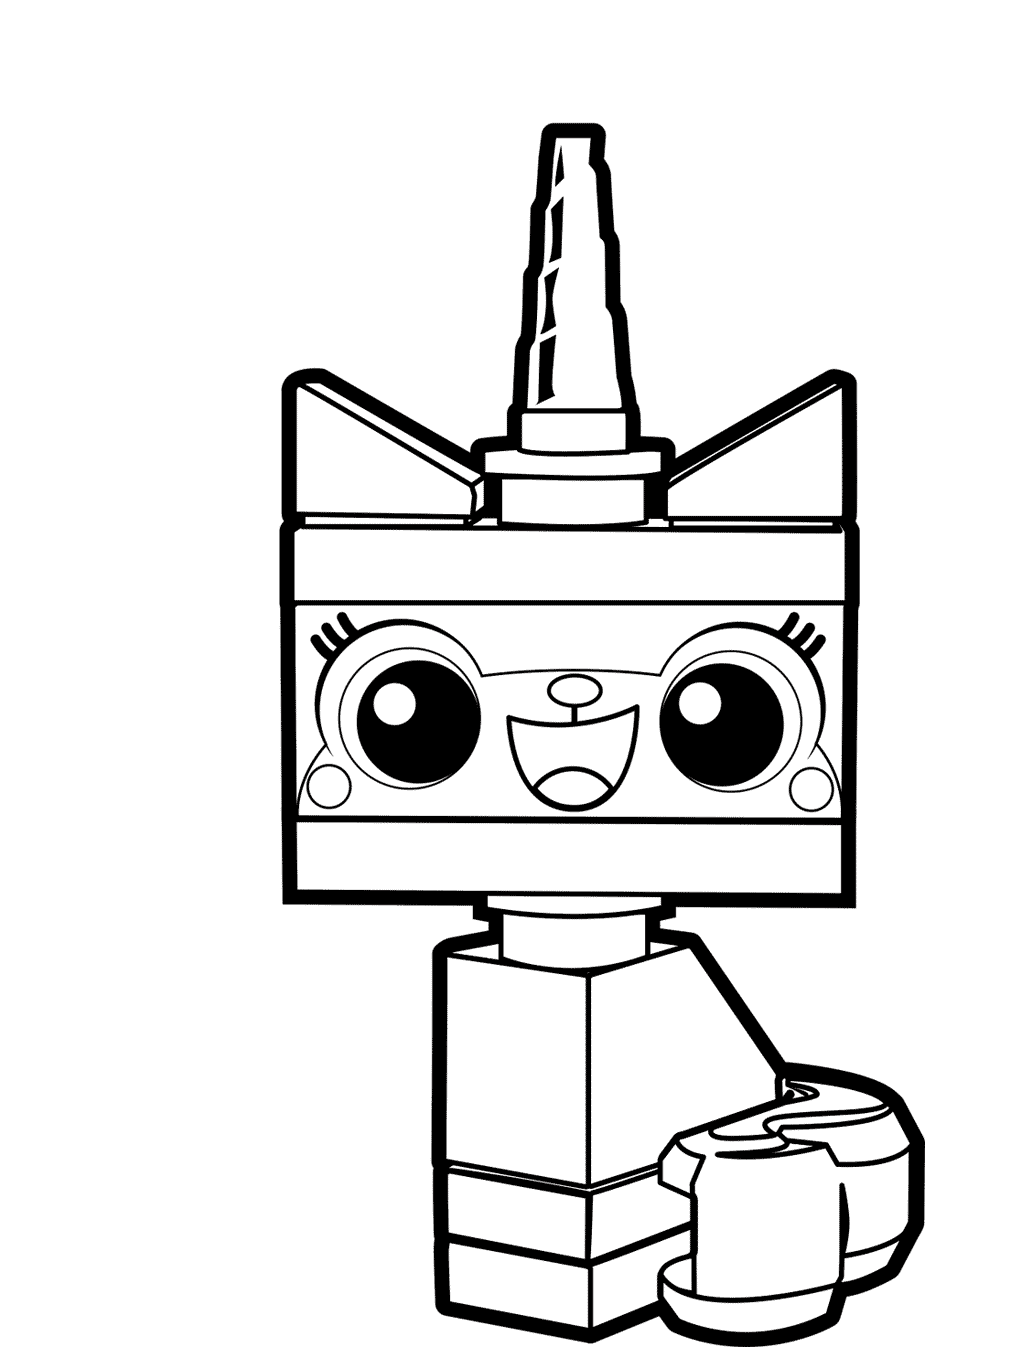 lego movie coloring pages the lego movie coloring pages birthday printable movie coloring lego pages